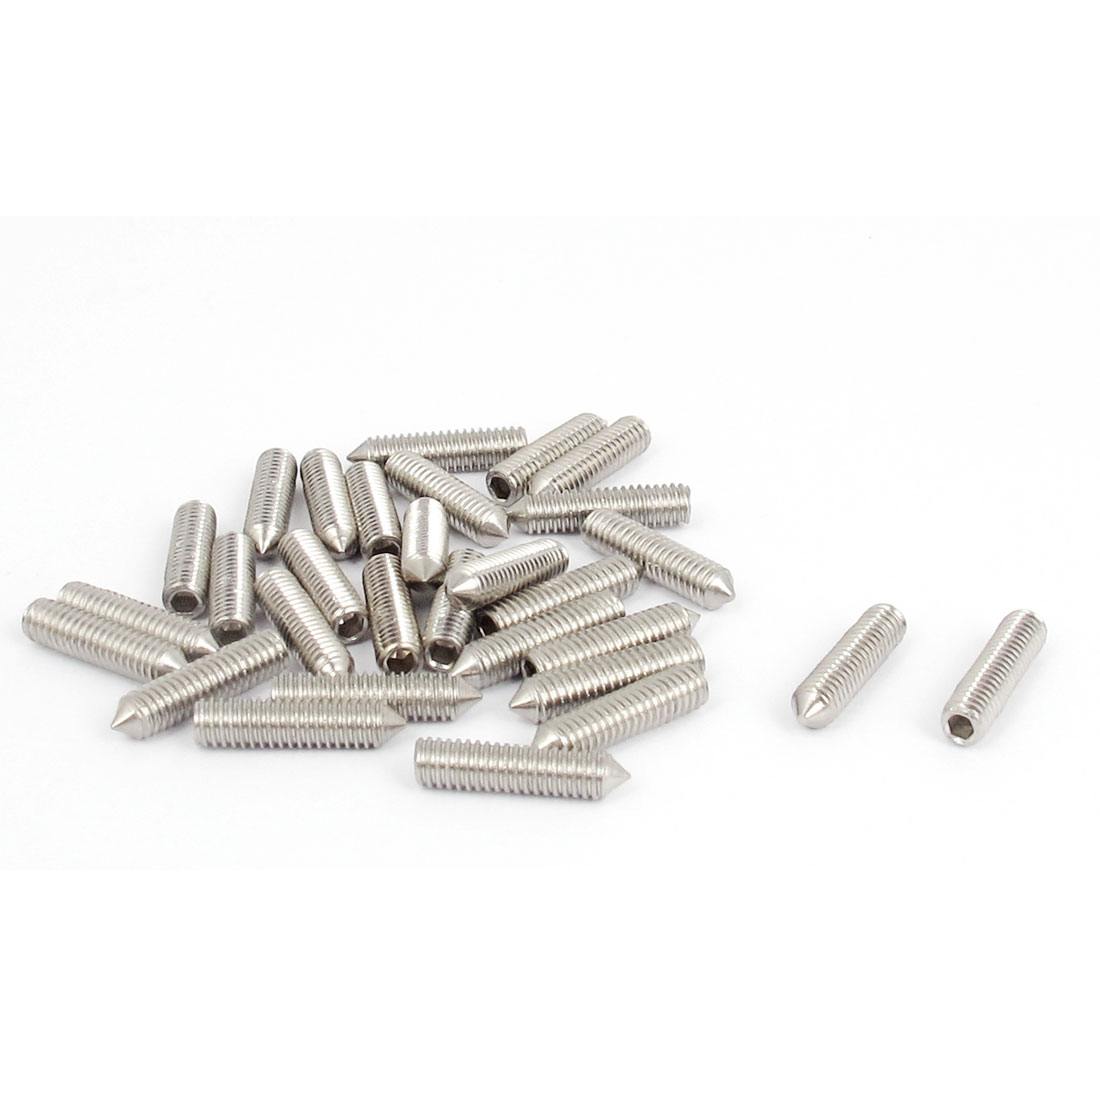 M4x16mm 304 Stainless Steel Cone Point Hexagon Socket Grub Screws 30pcs